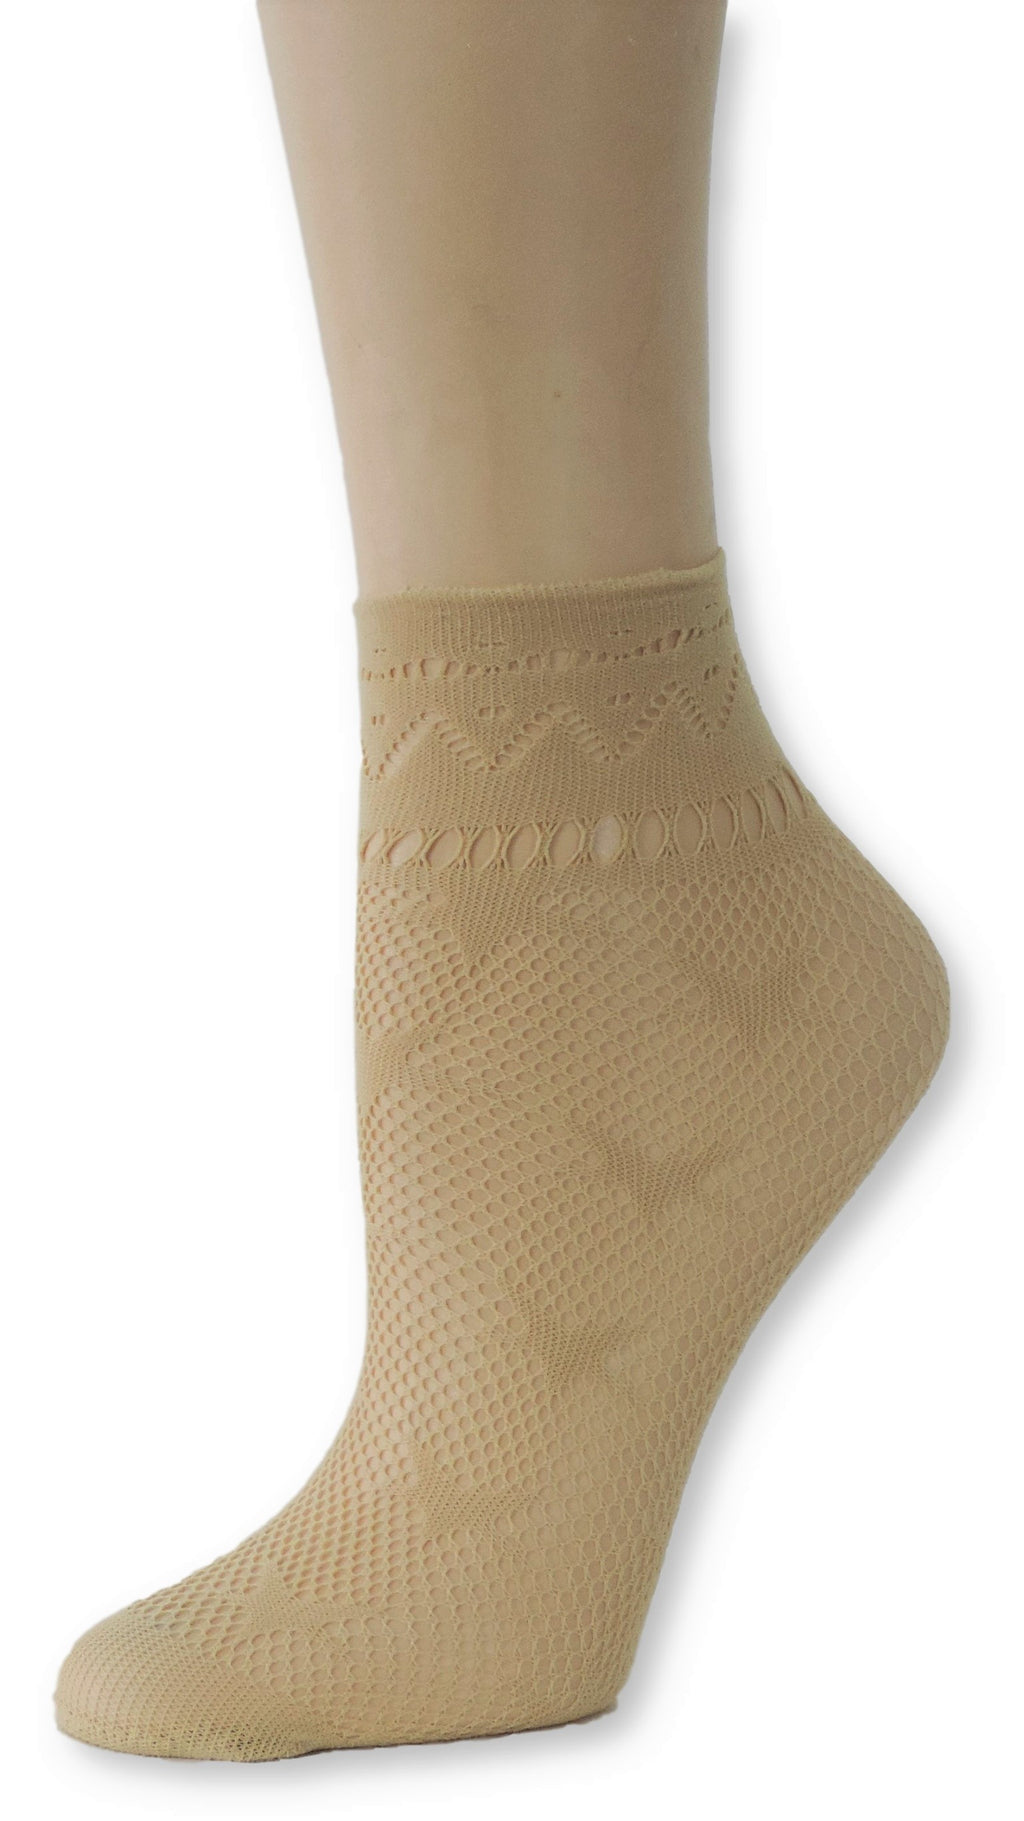 Beige Star Ankle Mesh Socks - Global Trendz Fashion®